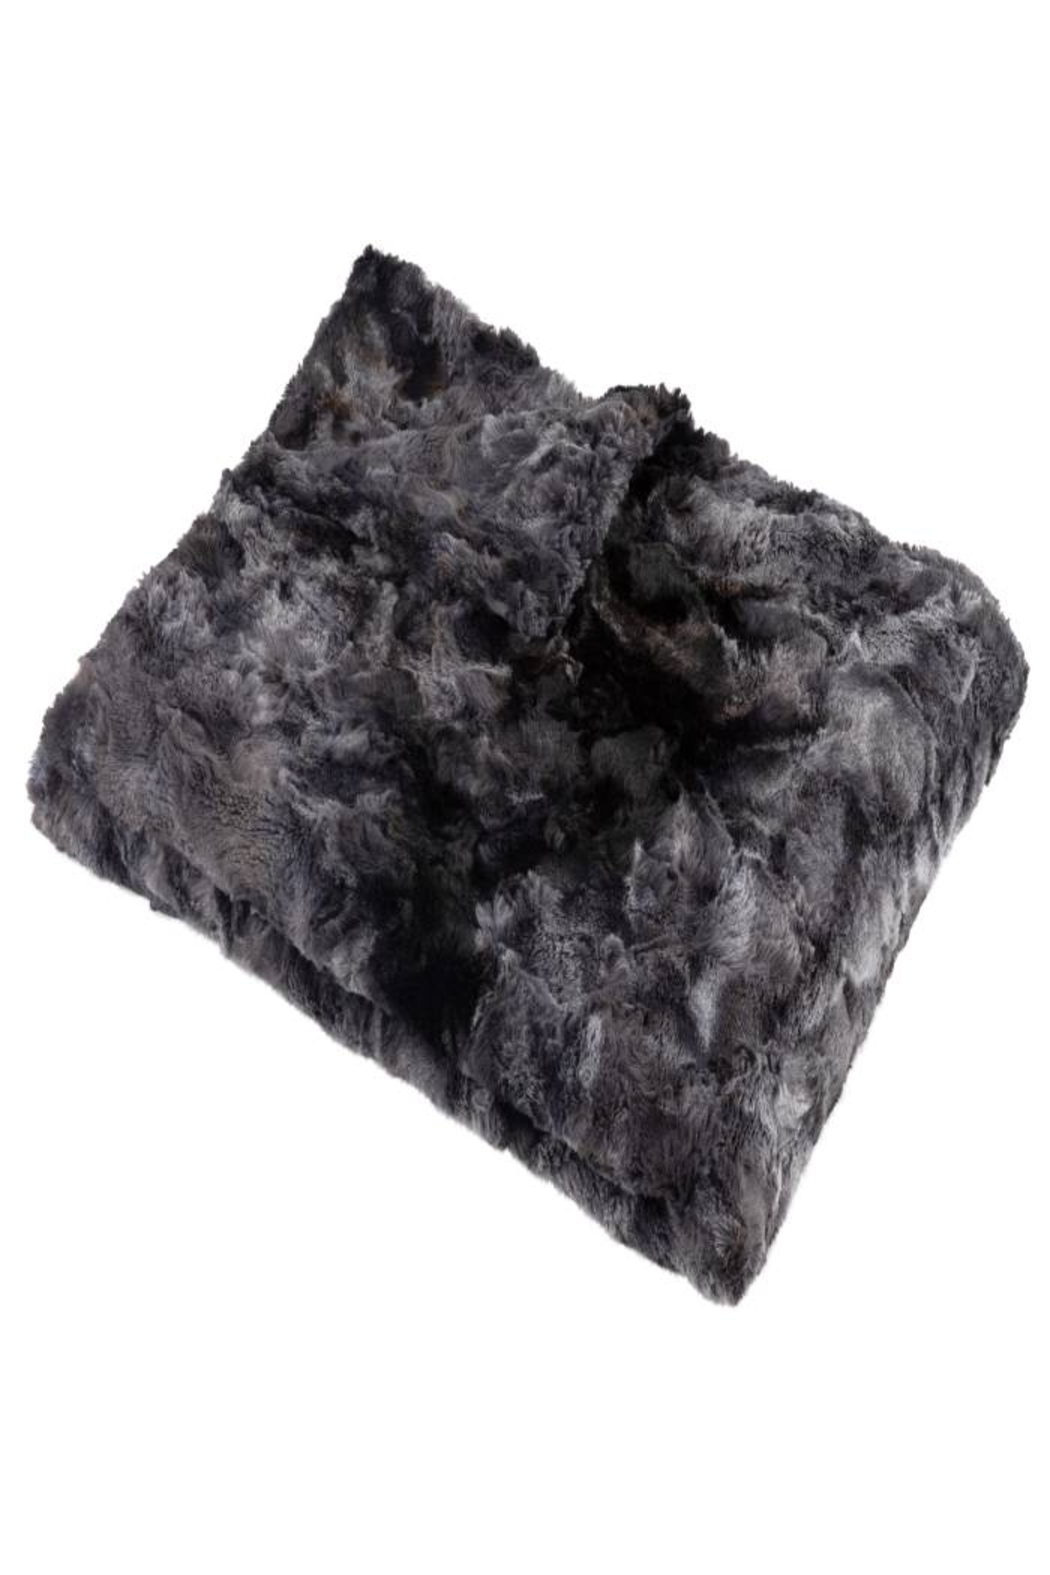 MINI POCKET Mini Pocket Collection Faux Fur Handmade in USA Infant Baby Blanket (Star Night) - Front Cropped Image